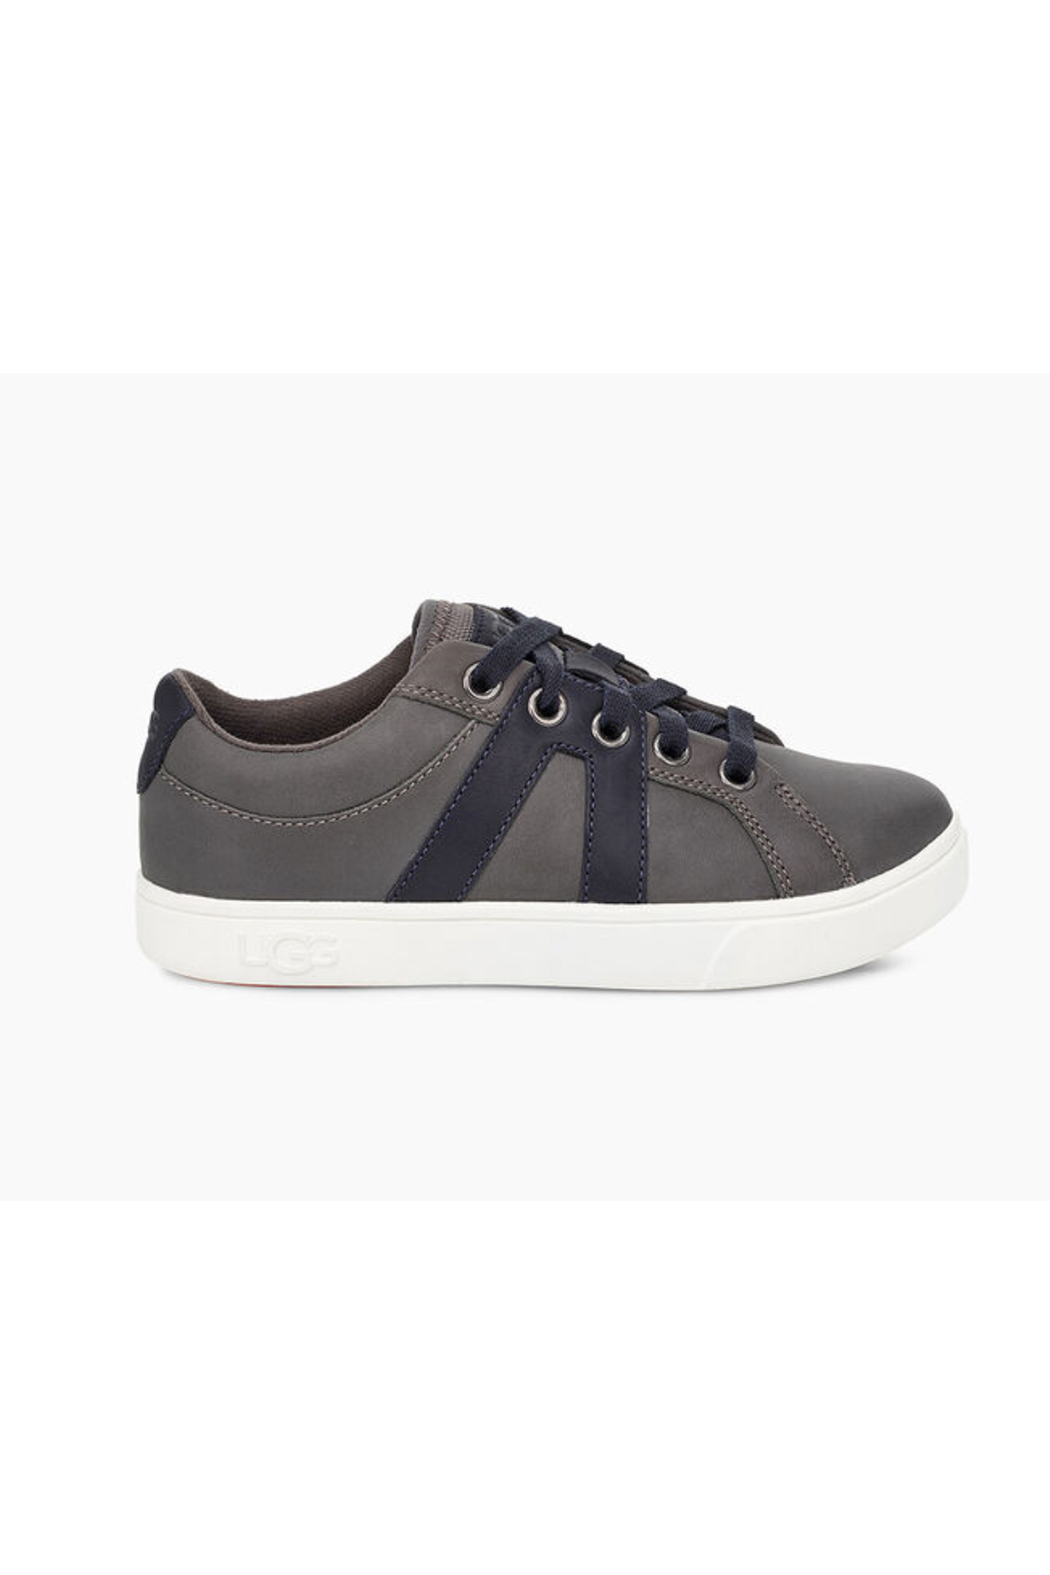 Ugg Marcus Sneaker Leather - Main Image